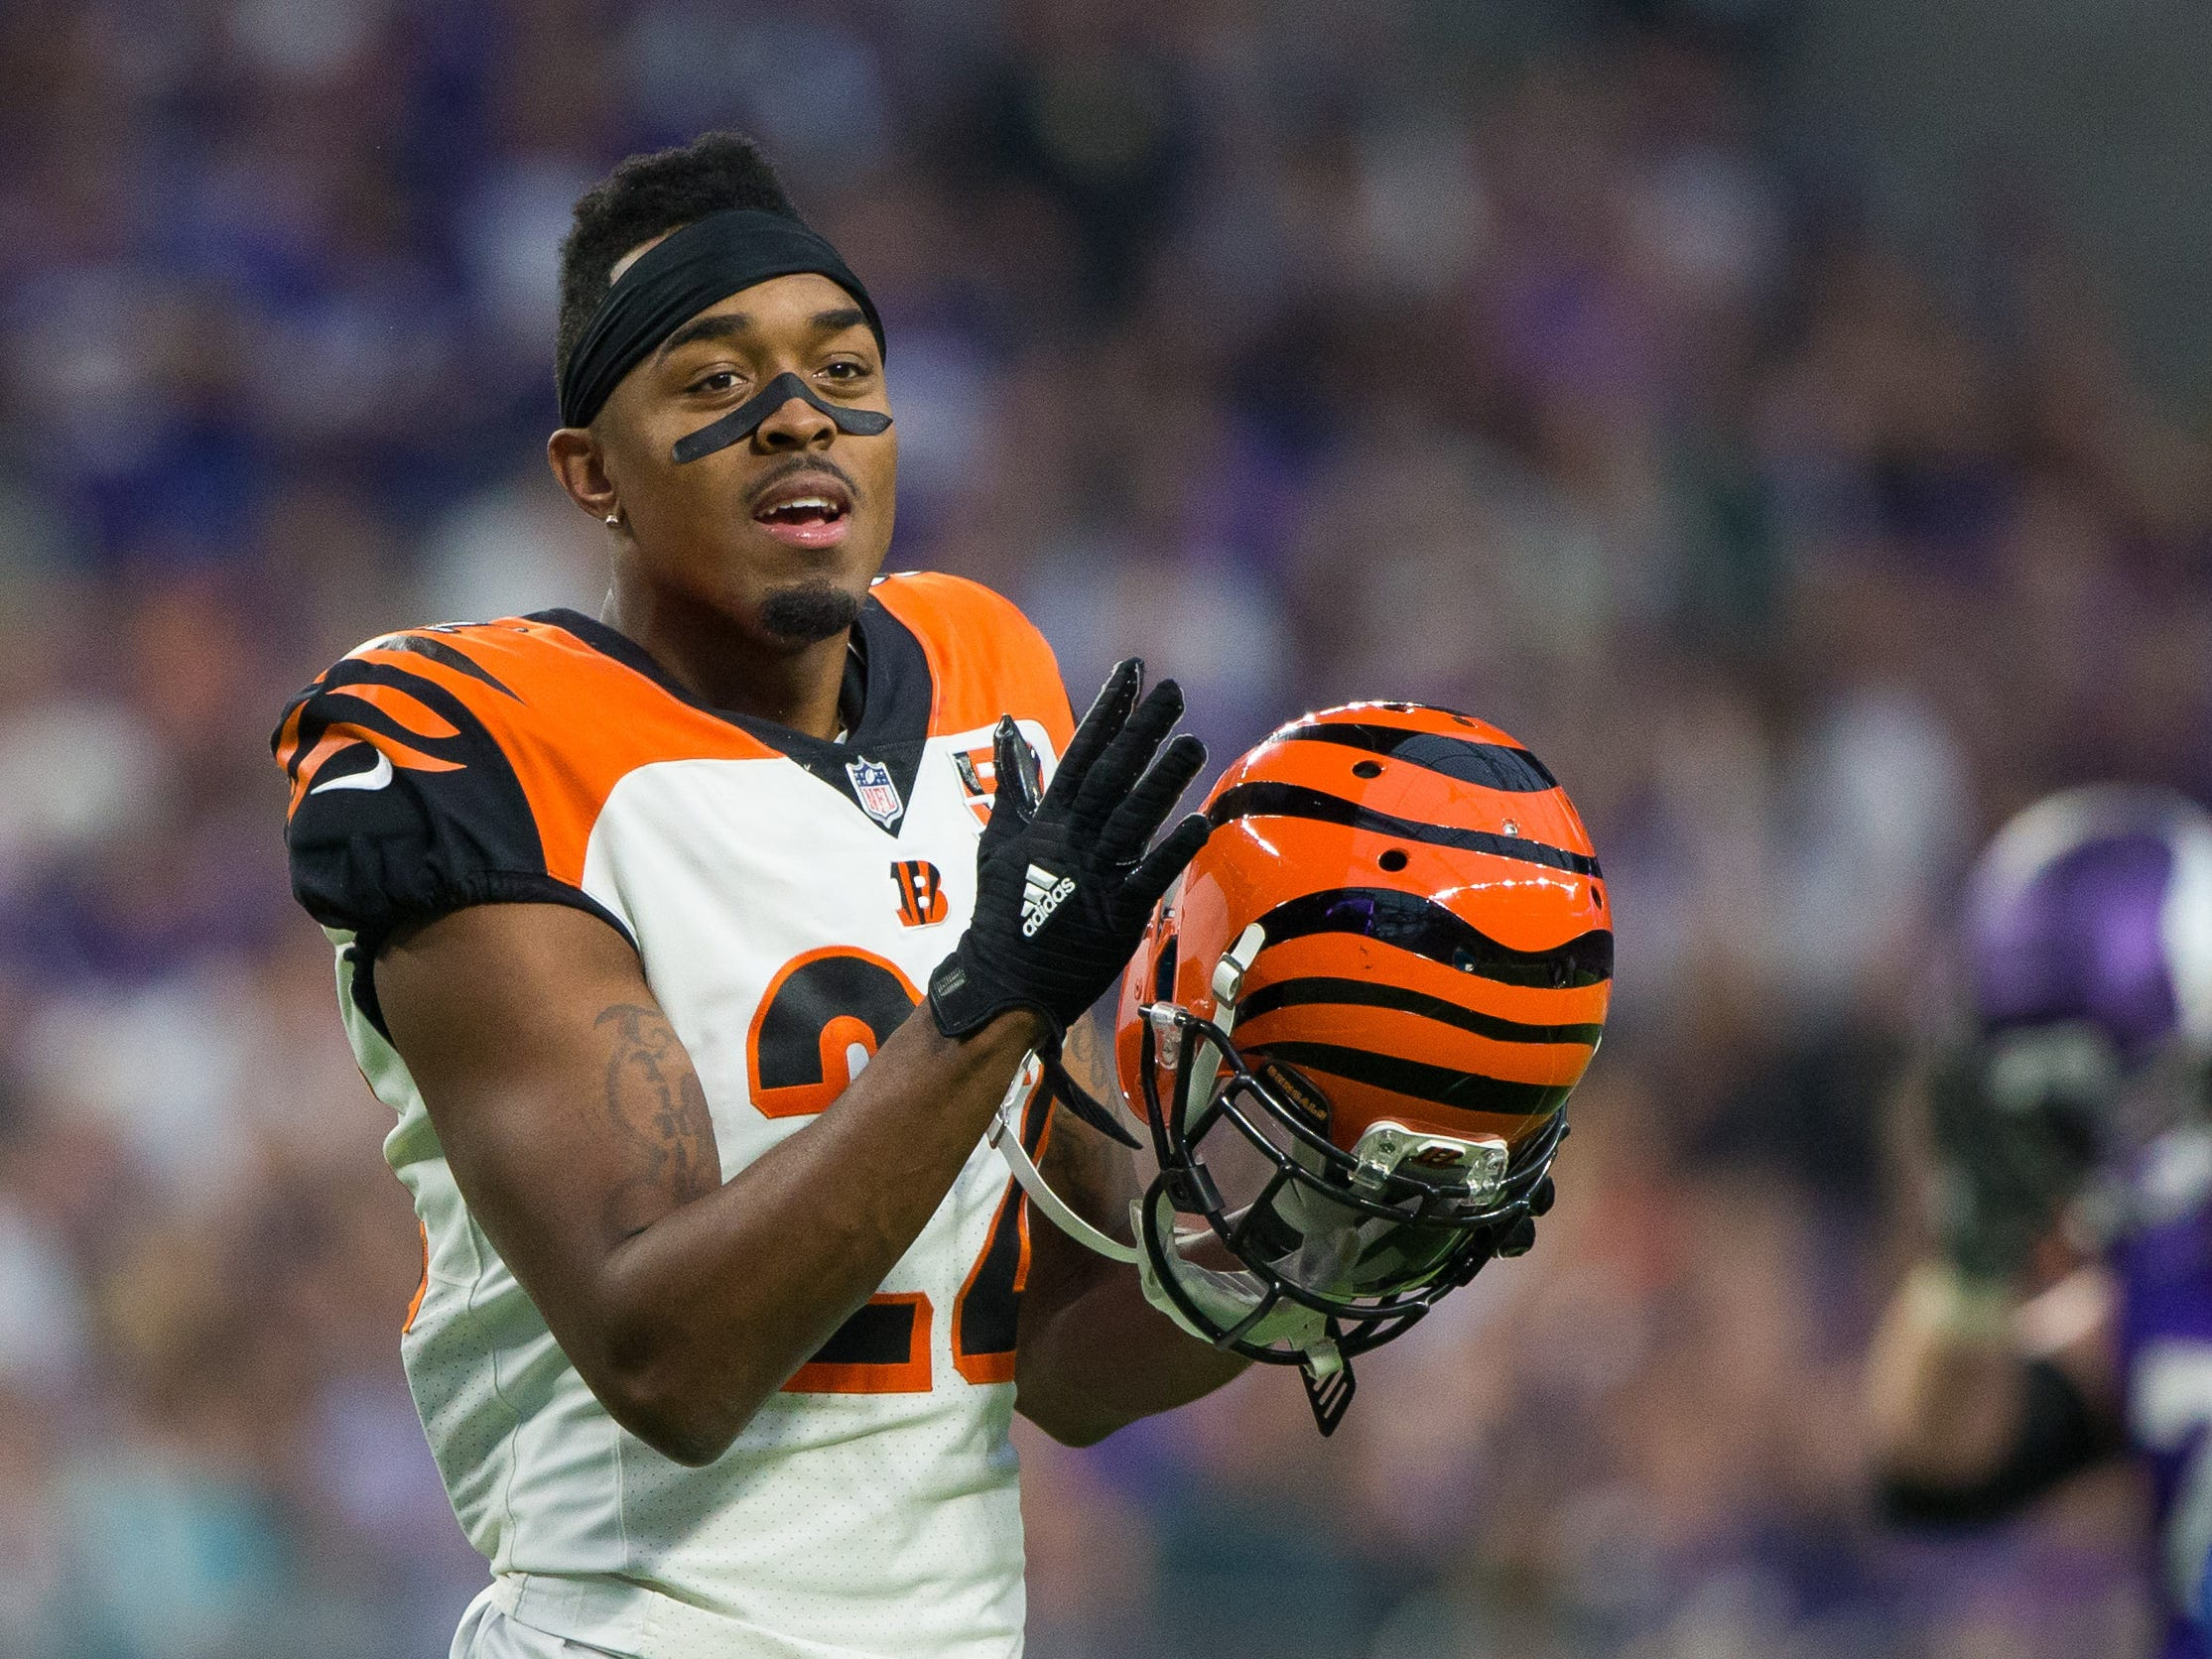 25. Bengals (23): CB William Jackson III is one of best young players you might not have heard of. But he can't do much if Cincy fails again to stop run.